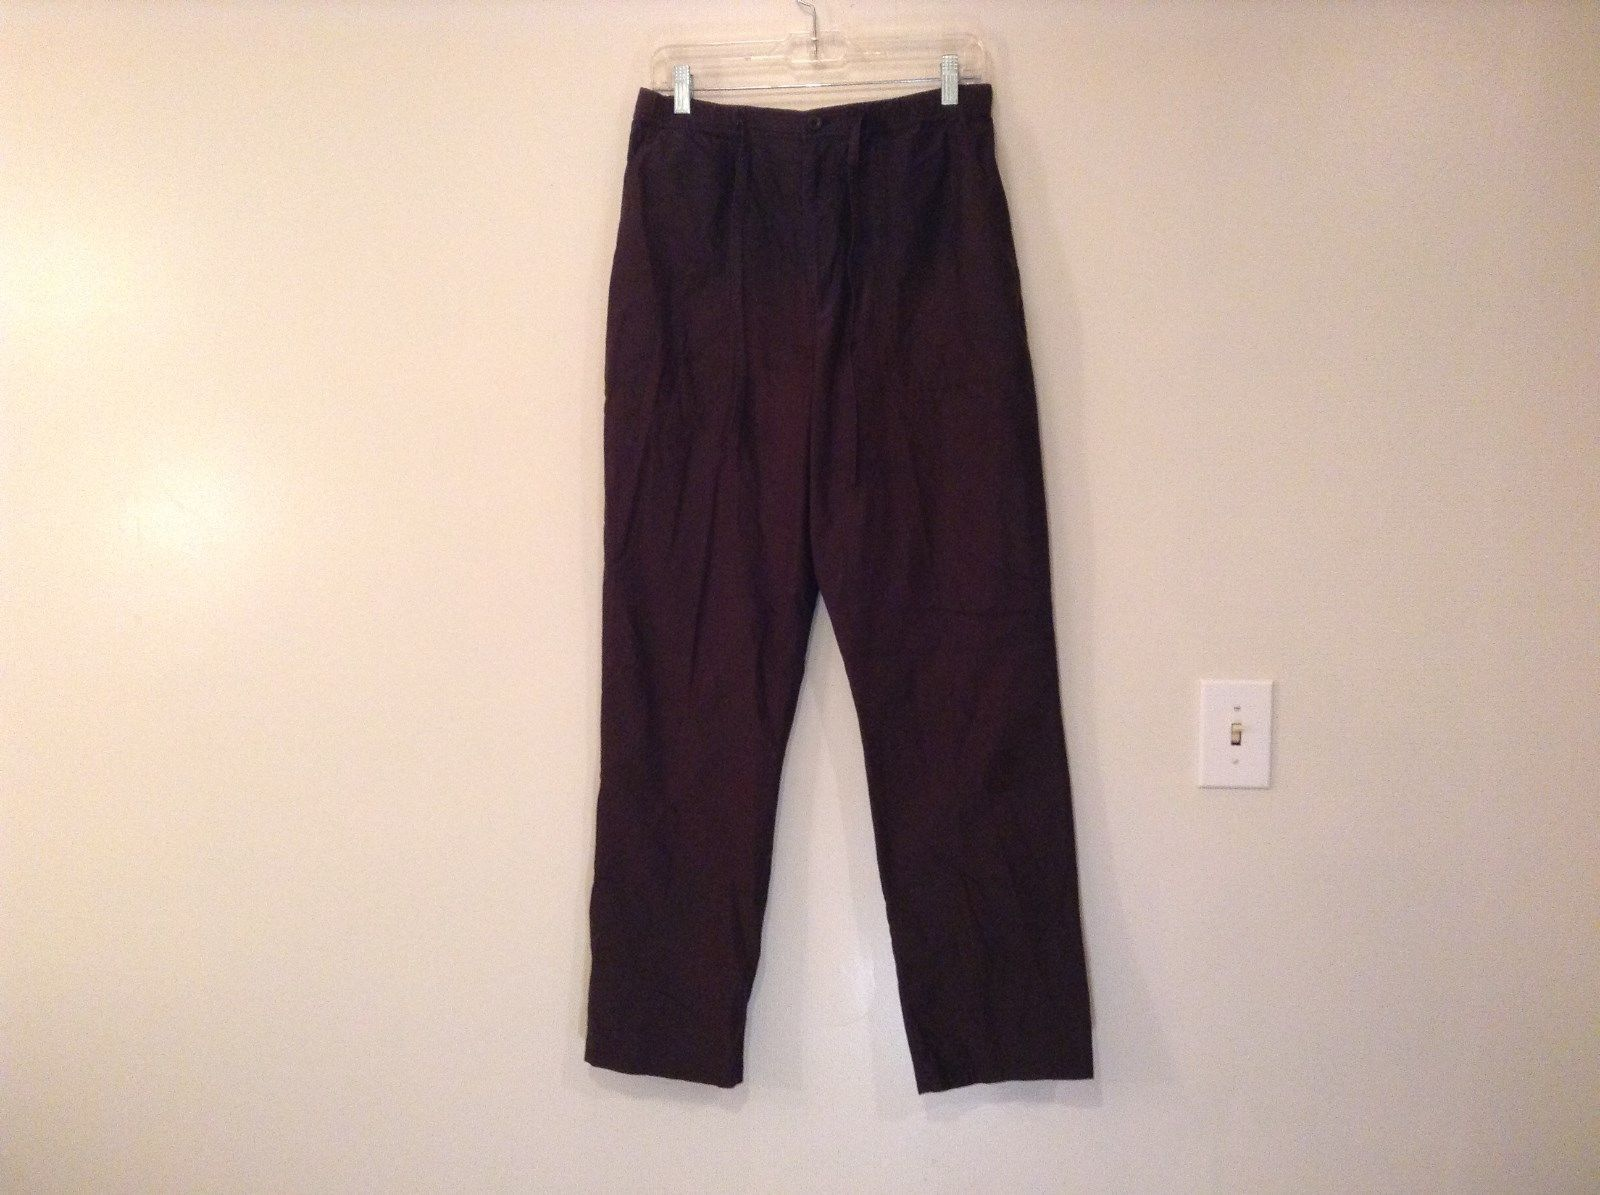 Northern Reflections Dark Brown Size M to L Sport Pants Adjustable Waist